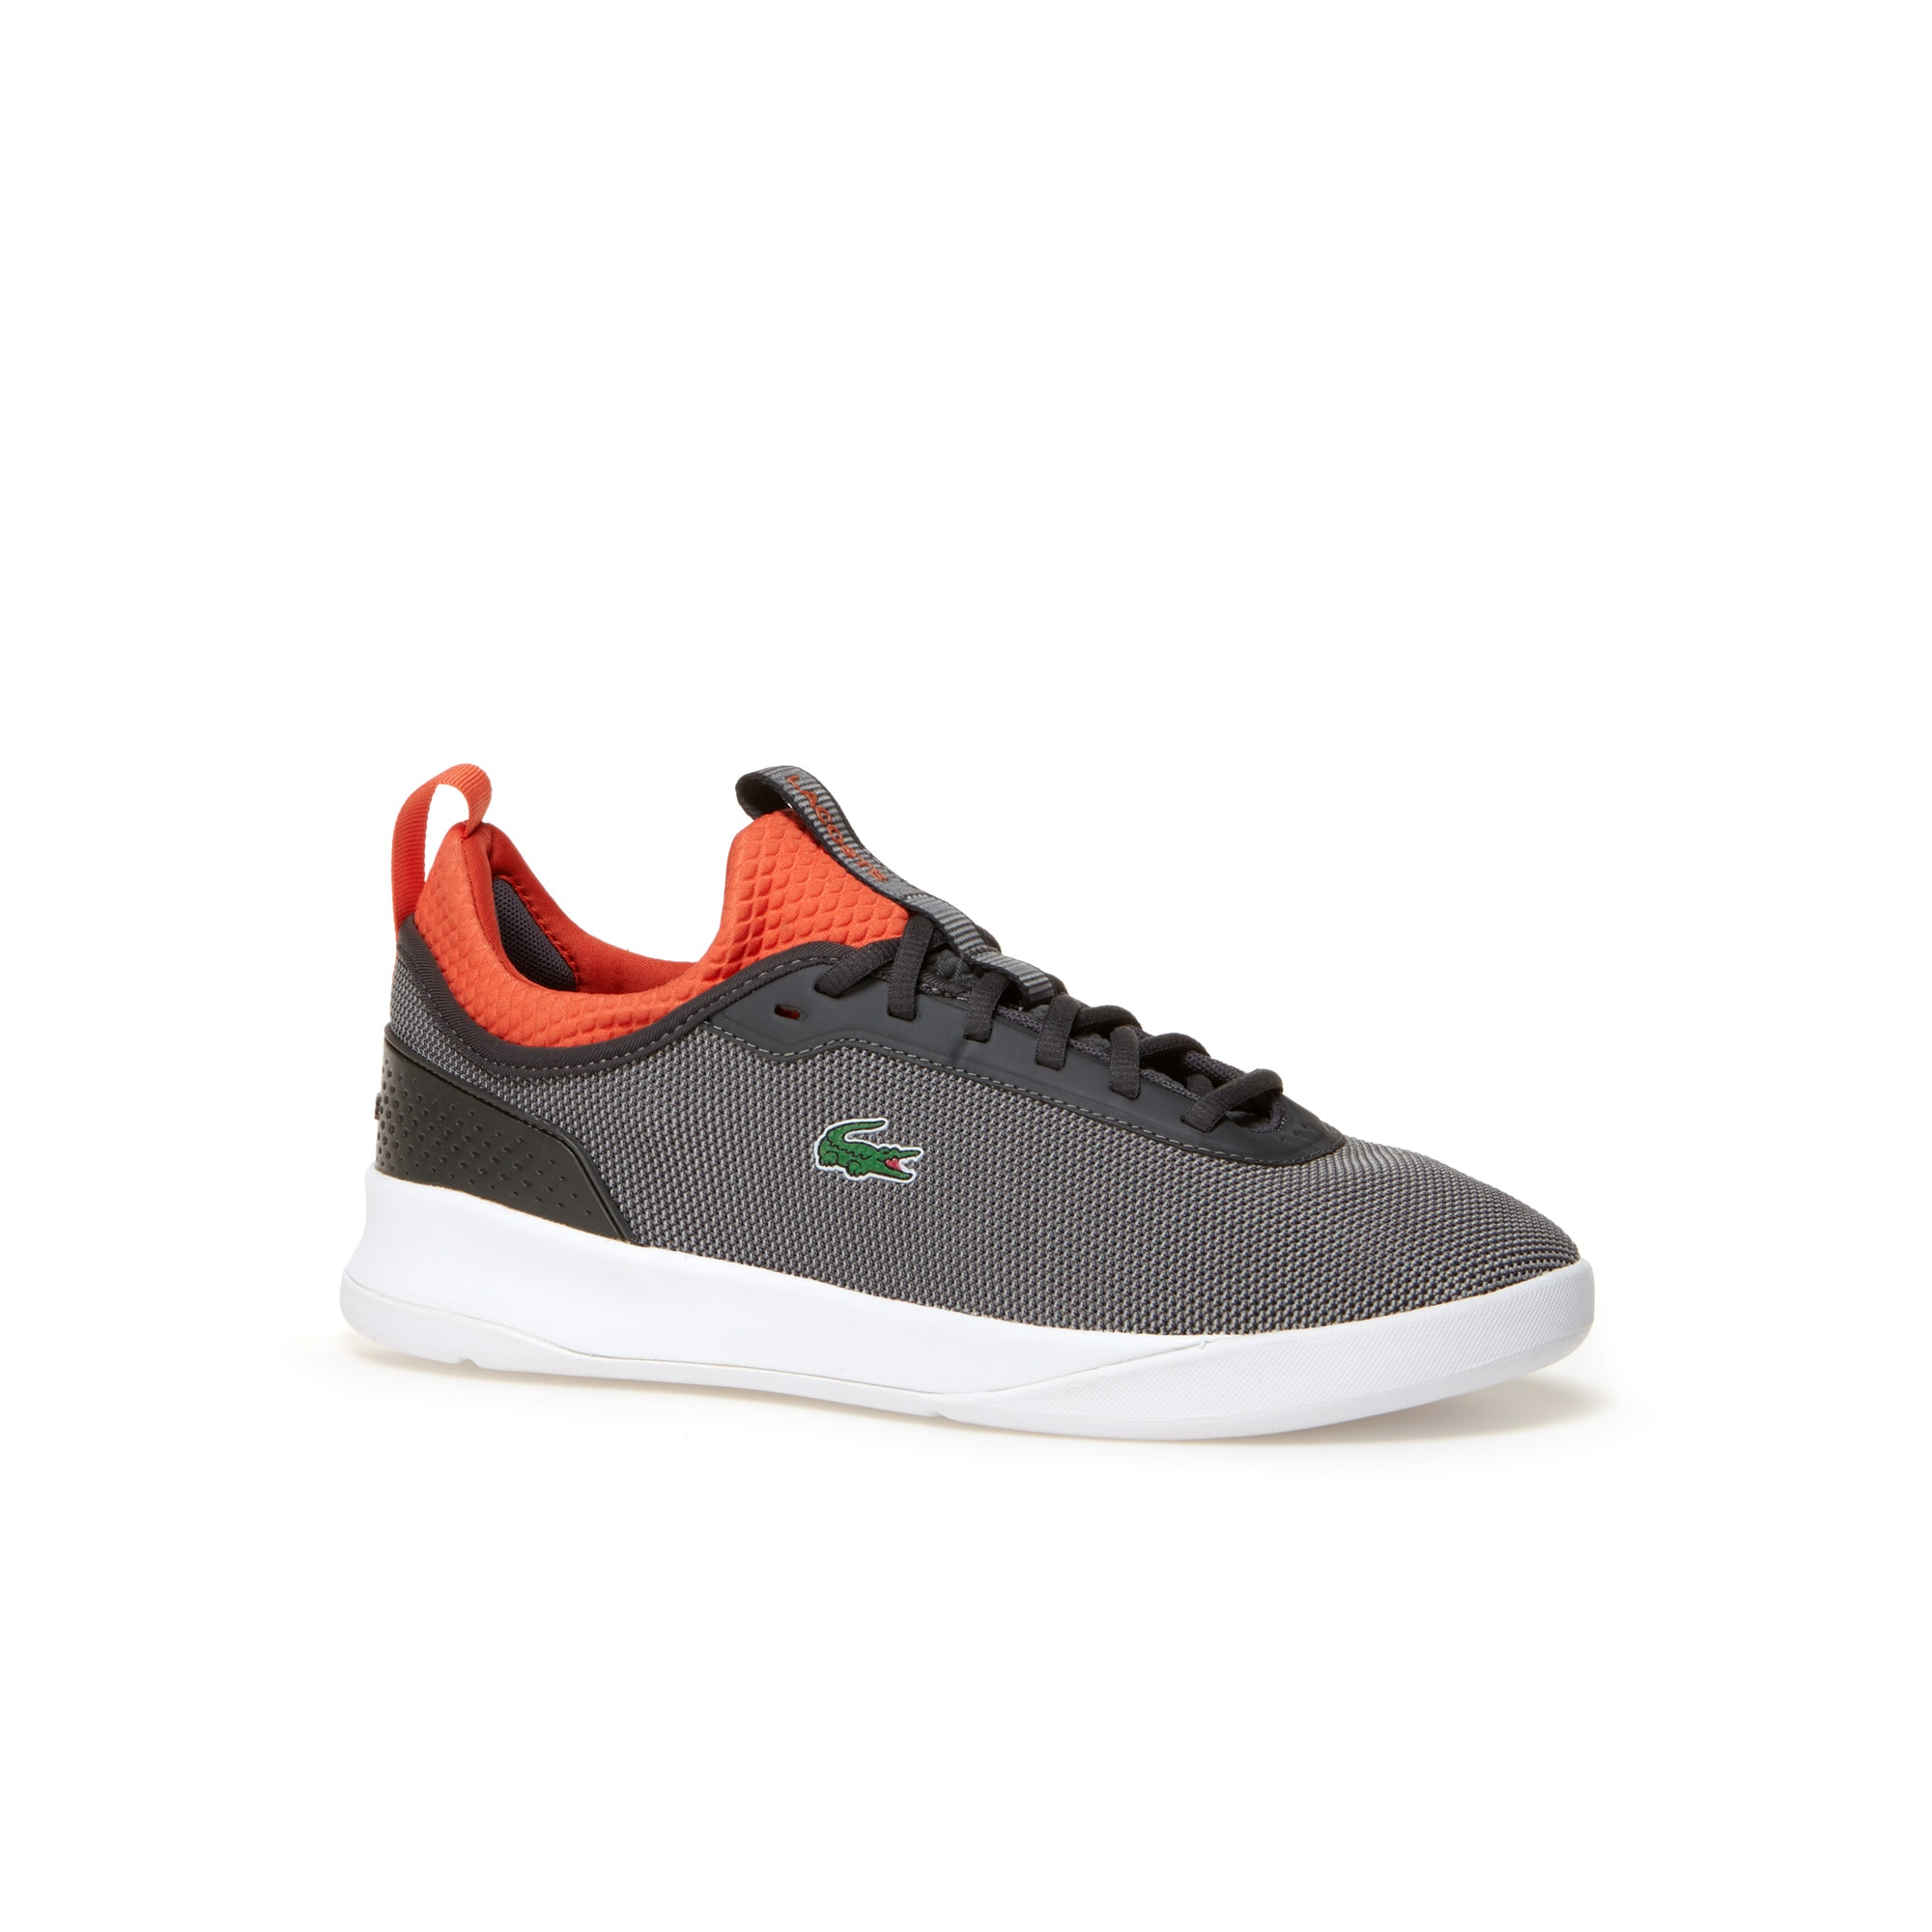 Men's LT Spirit 2.0 Textile Sneakers